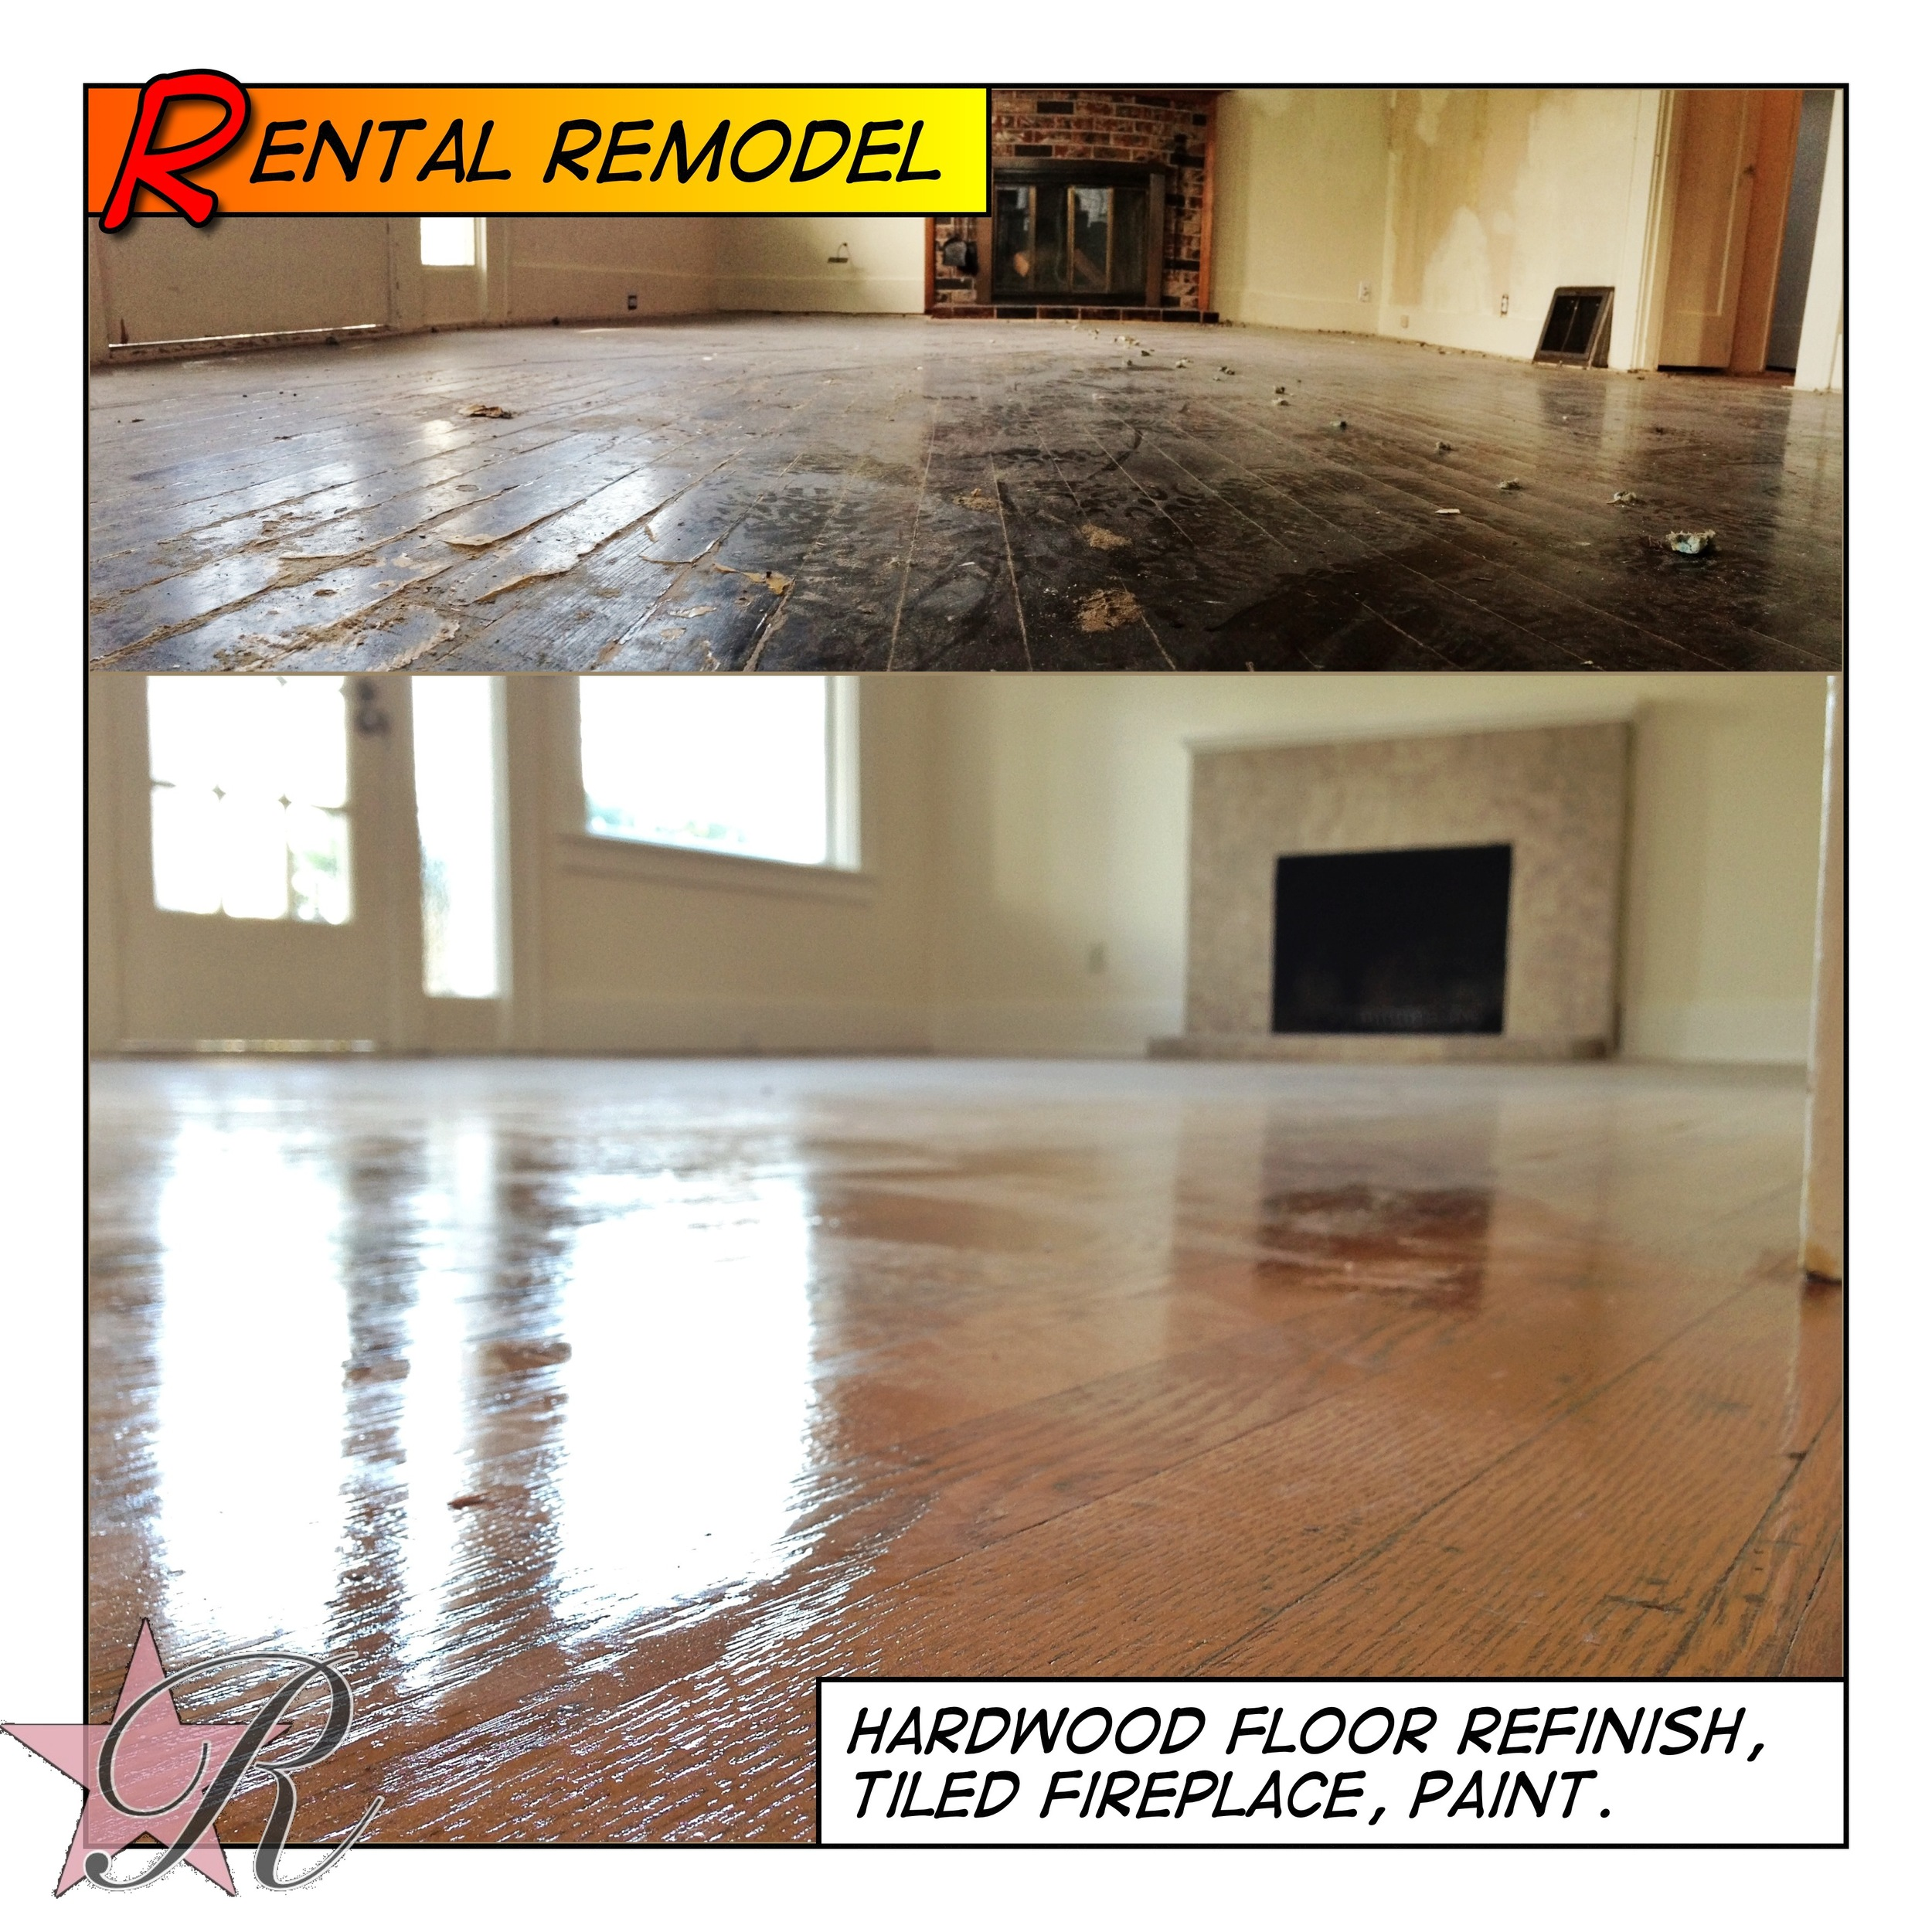 Rockstar Remodel removed the carpet and refinished the existing hardwood flooring.